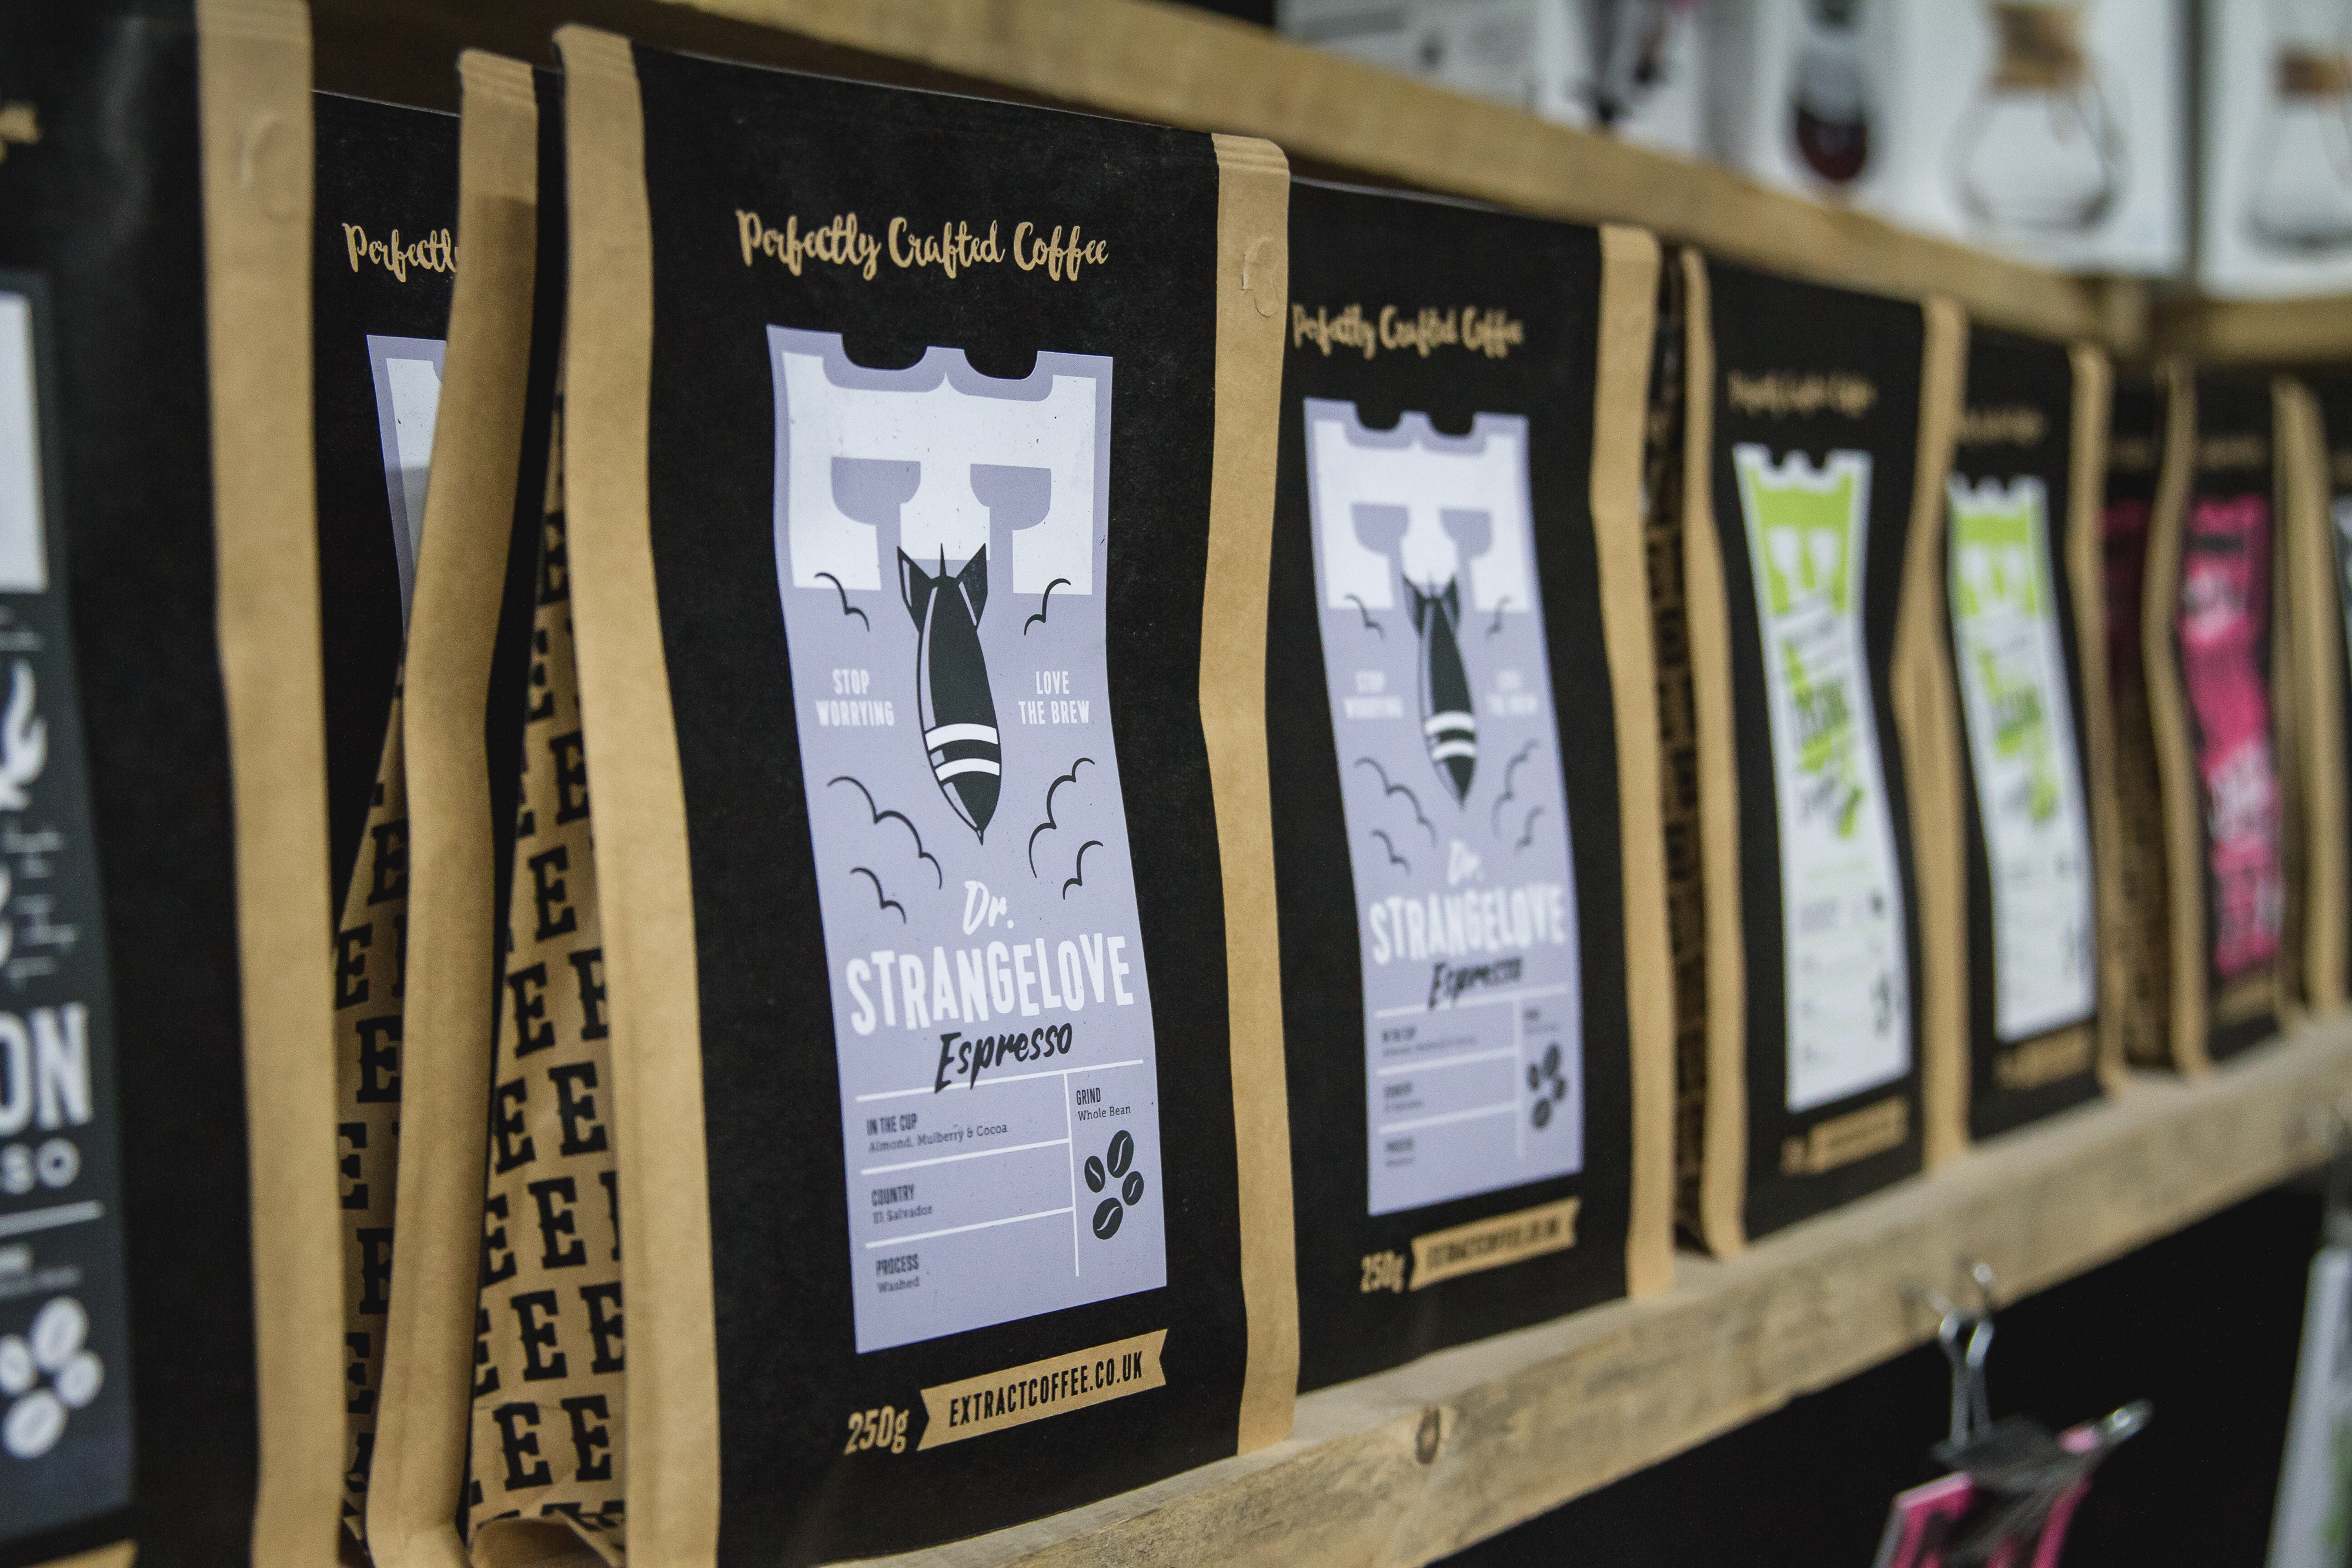 extract retail bags of coffee